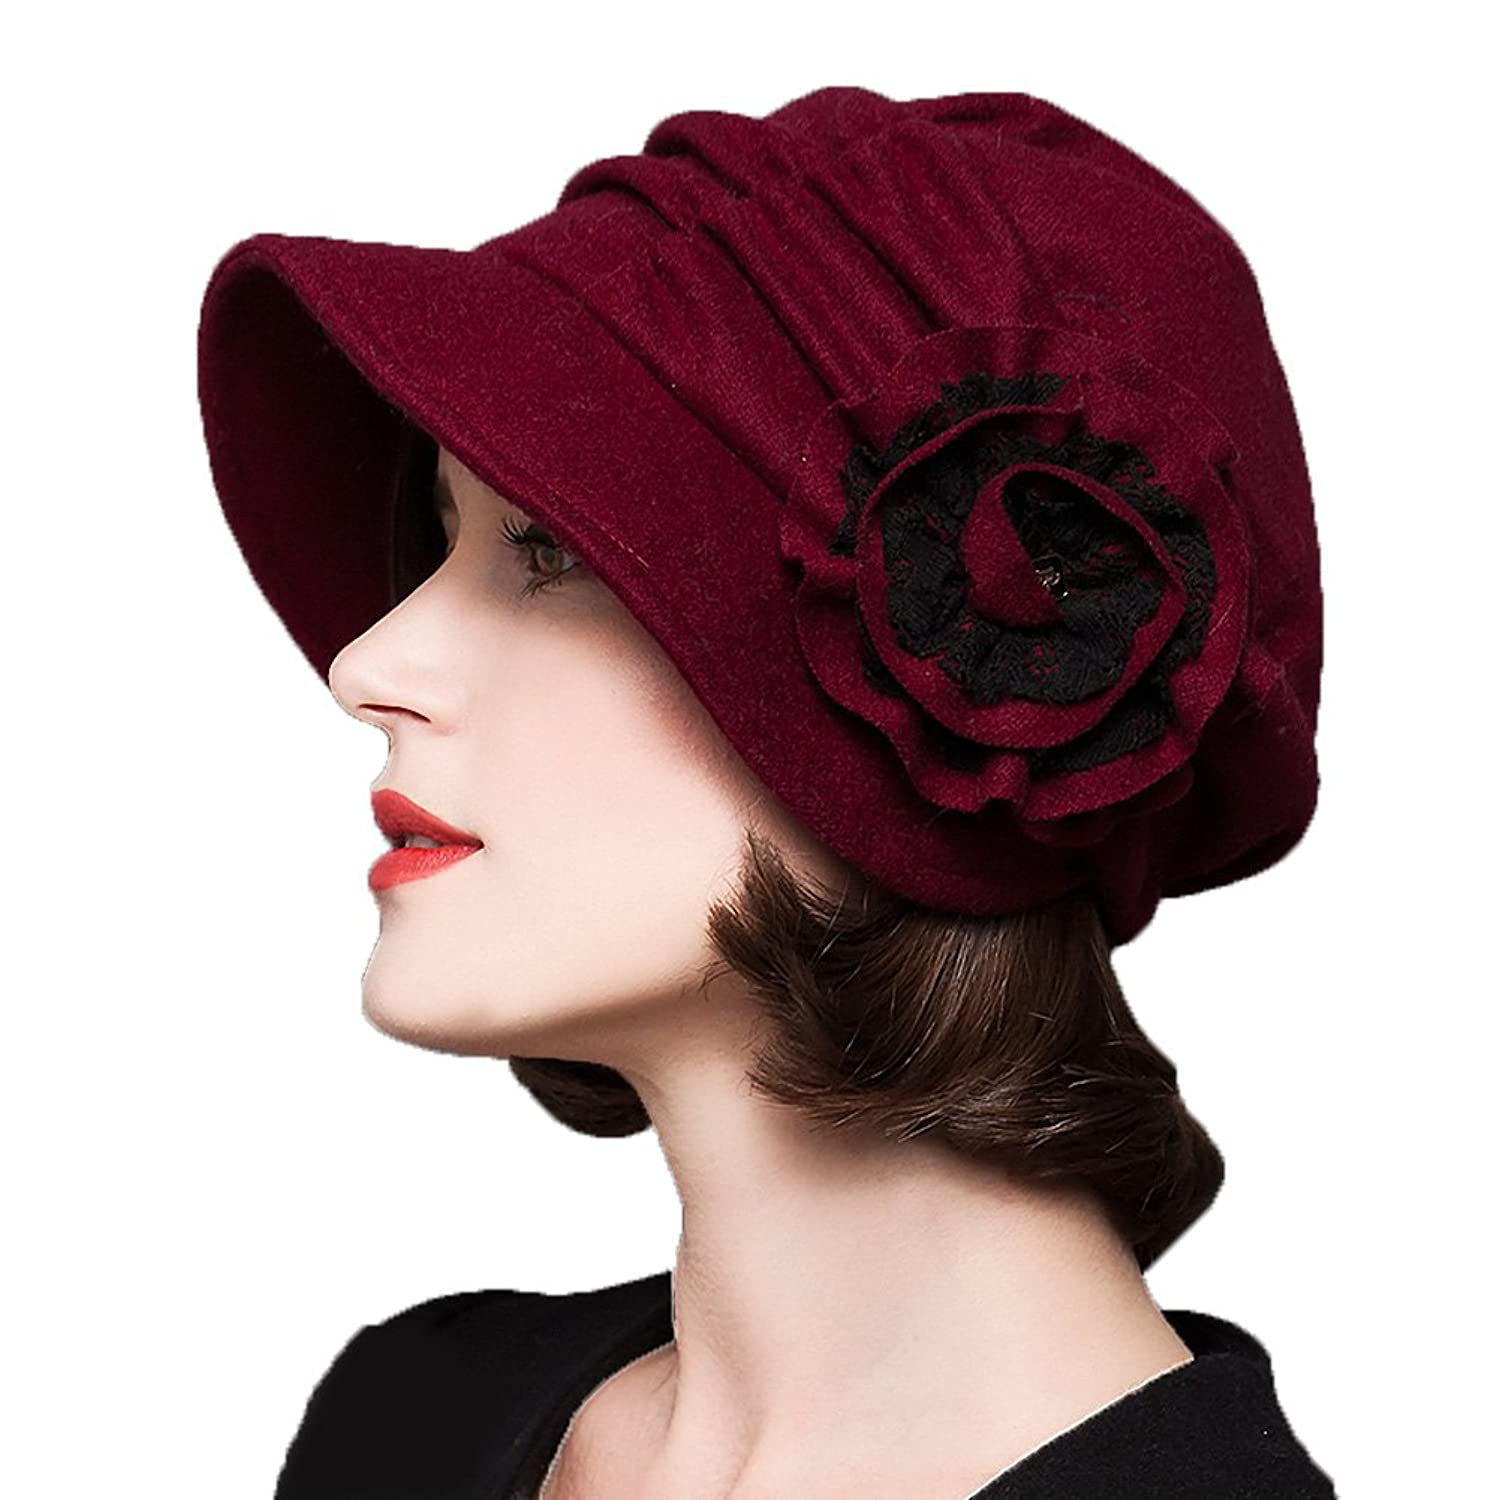 Downton Abbey Costumes Ideas Decorative Flowers Wool Beret Maitose Trade Womens Decorative Flowers Wool Beret $28.40 AT vintagedancer.com